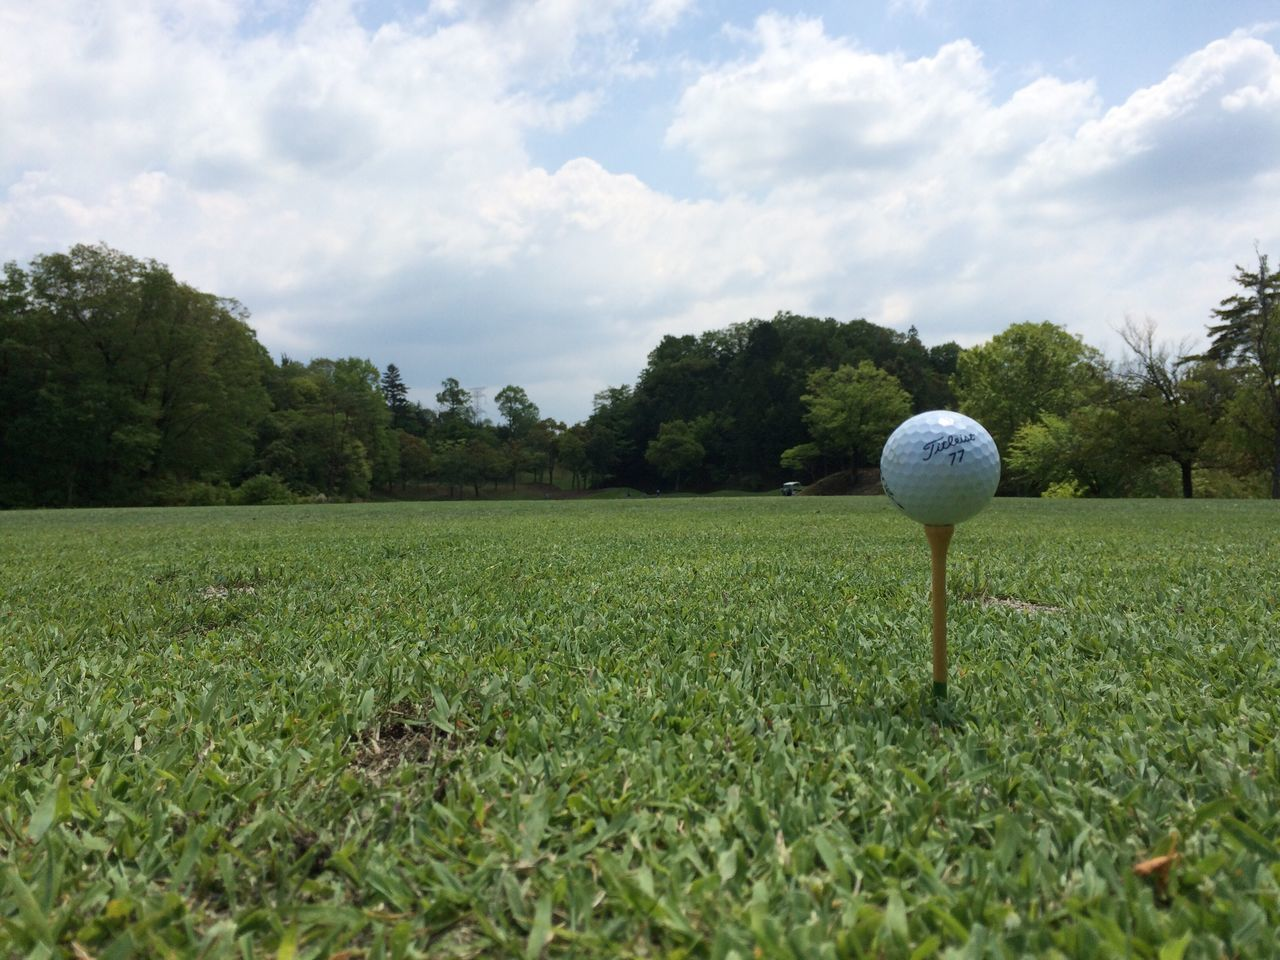 golf, grass, green color, golf ball, golf course, cloud - sky, tree, sport, ball, growth, sky, no people, green - golf course, nature, day, outdoors, tee, field, tranquility, scenics, beauty in nature, landscape